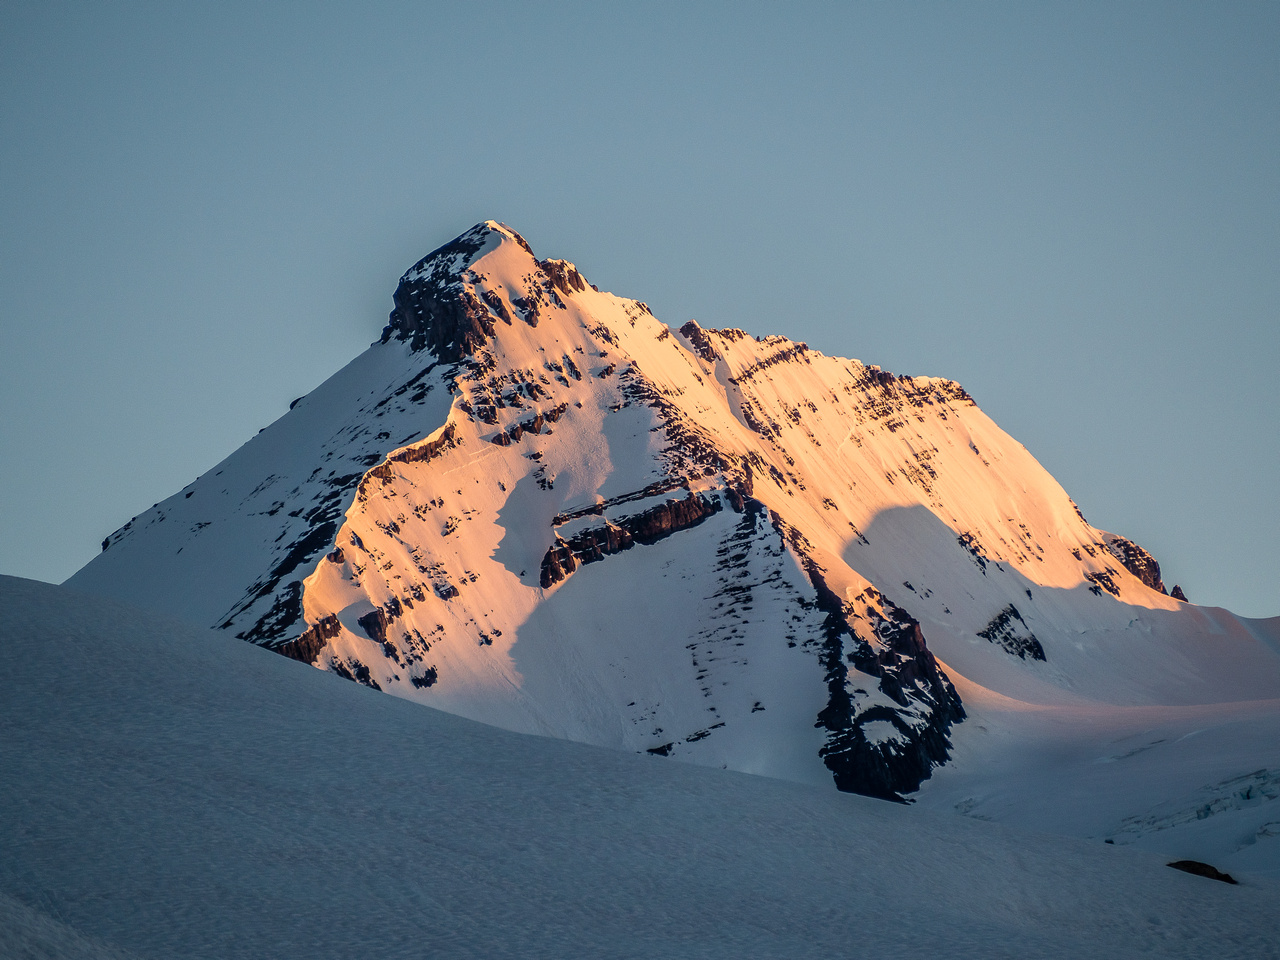 At around 05:50 the entire east face of Mount King Edward is lit up with warm morning sunshine.